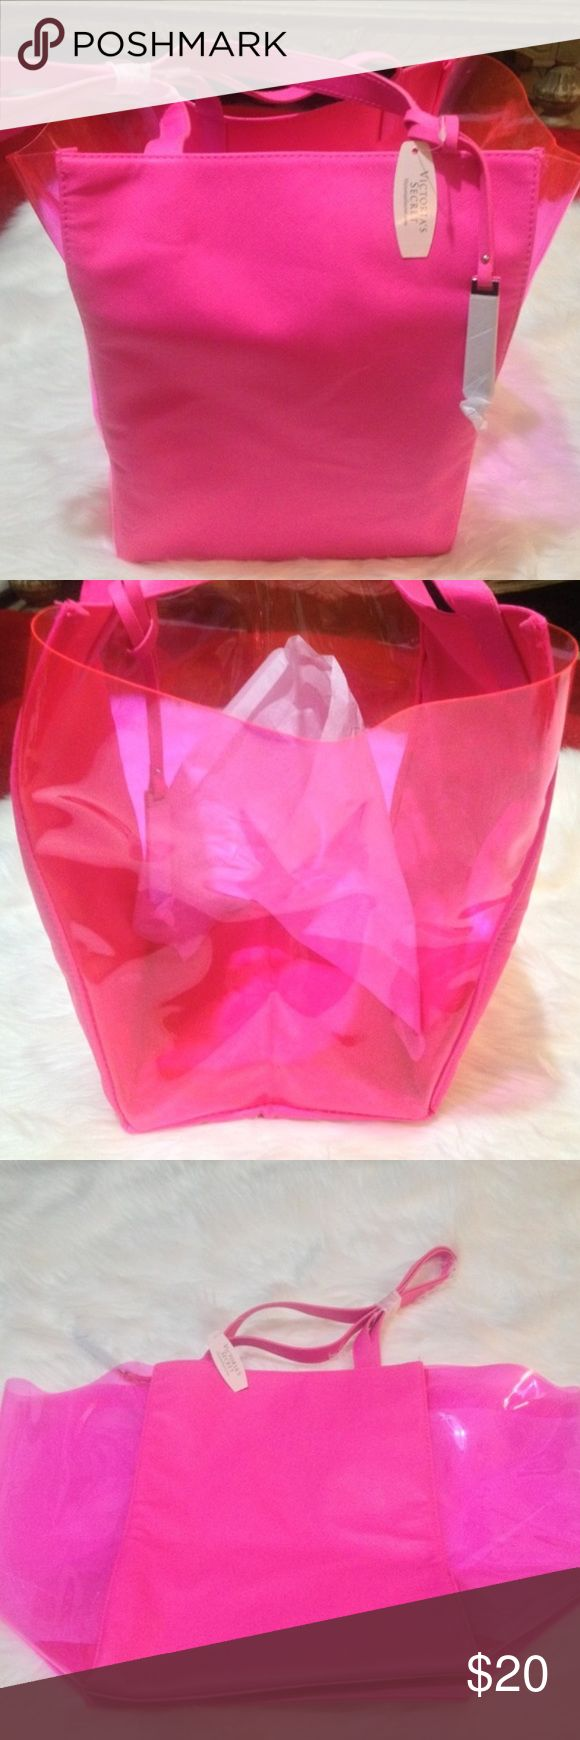 NWT Victoria's Secret clear and vinyl pink tote NWT Victoria's Secret clear and vinyl pink tote Victoria's Secret Bags Totes